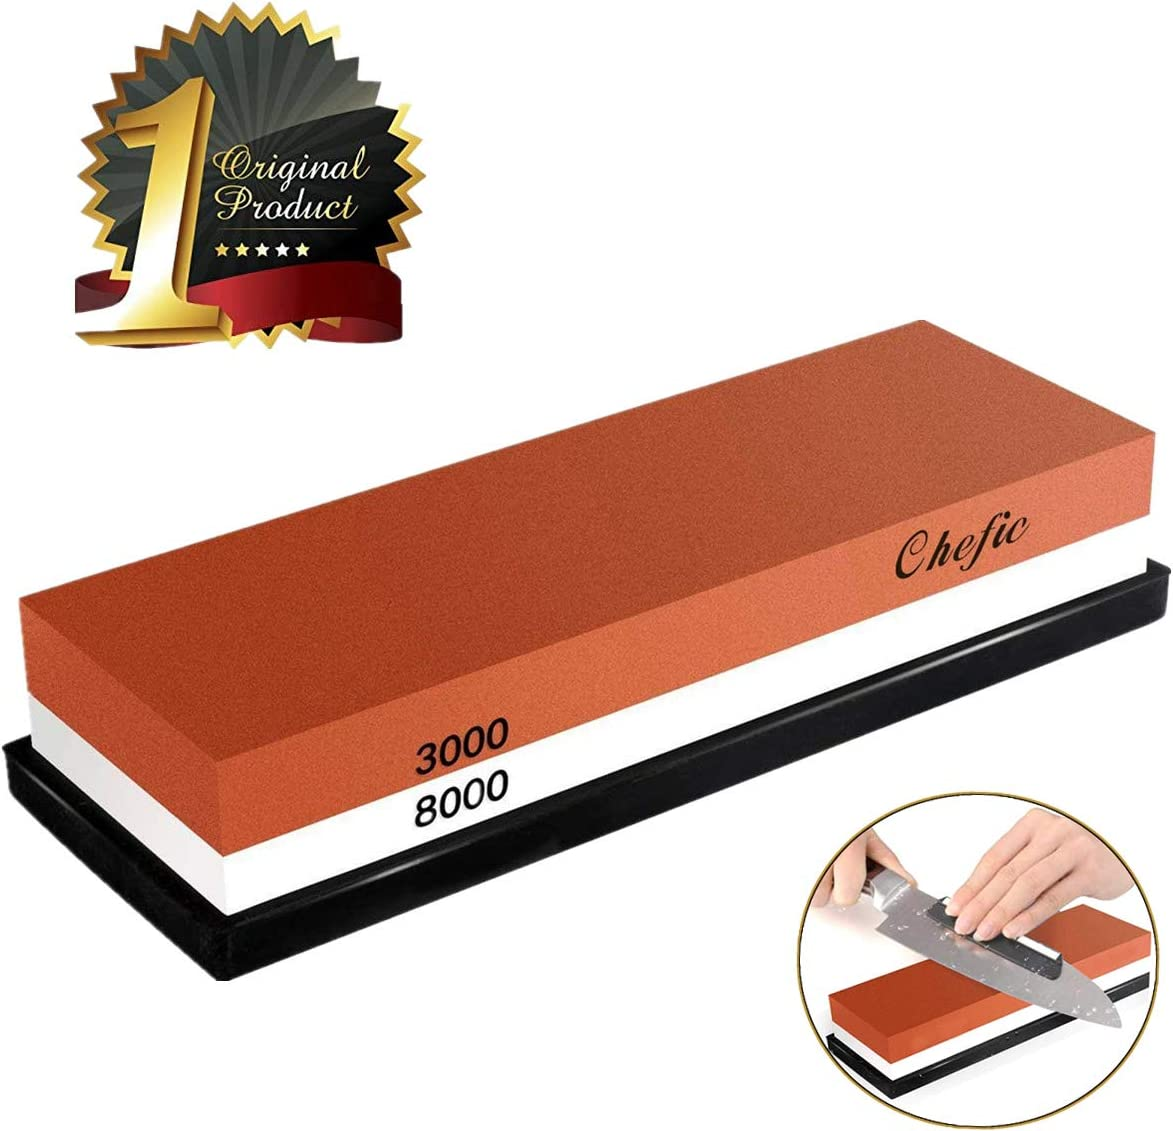 BearMoo Whetstone Premium 2-IN-1 Sharpening Stone 3000/8000 Grit Waterstone Kit - Knife Sharpener Stone Safe Honing Holder Silicone Base Included, Polishing...